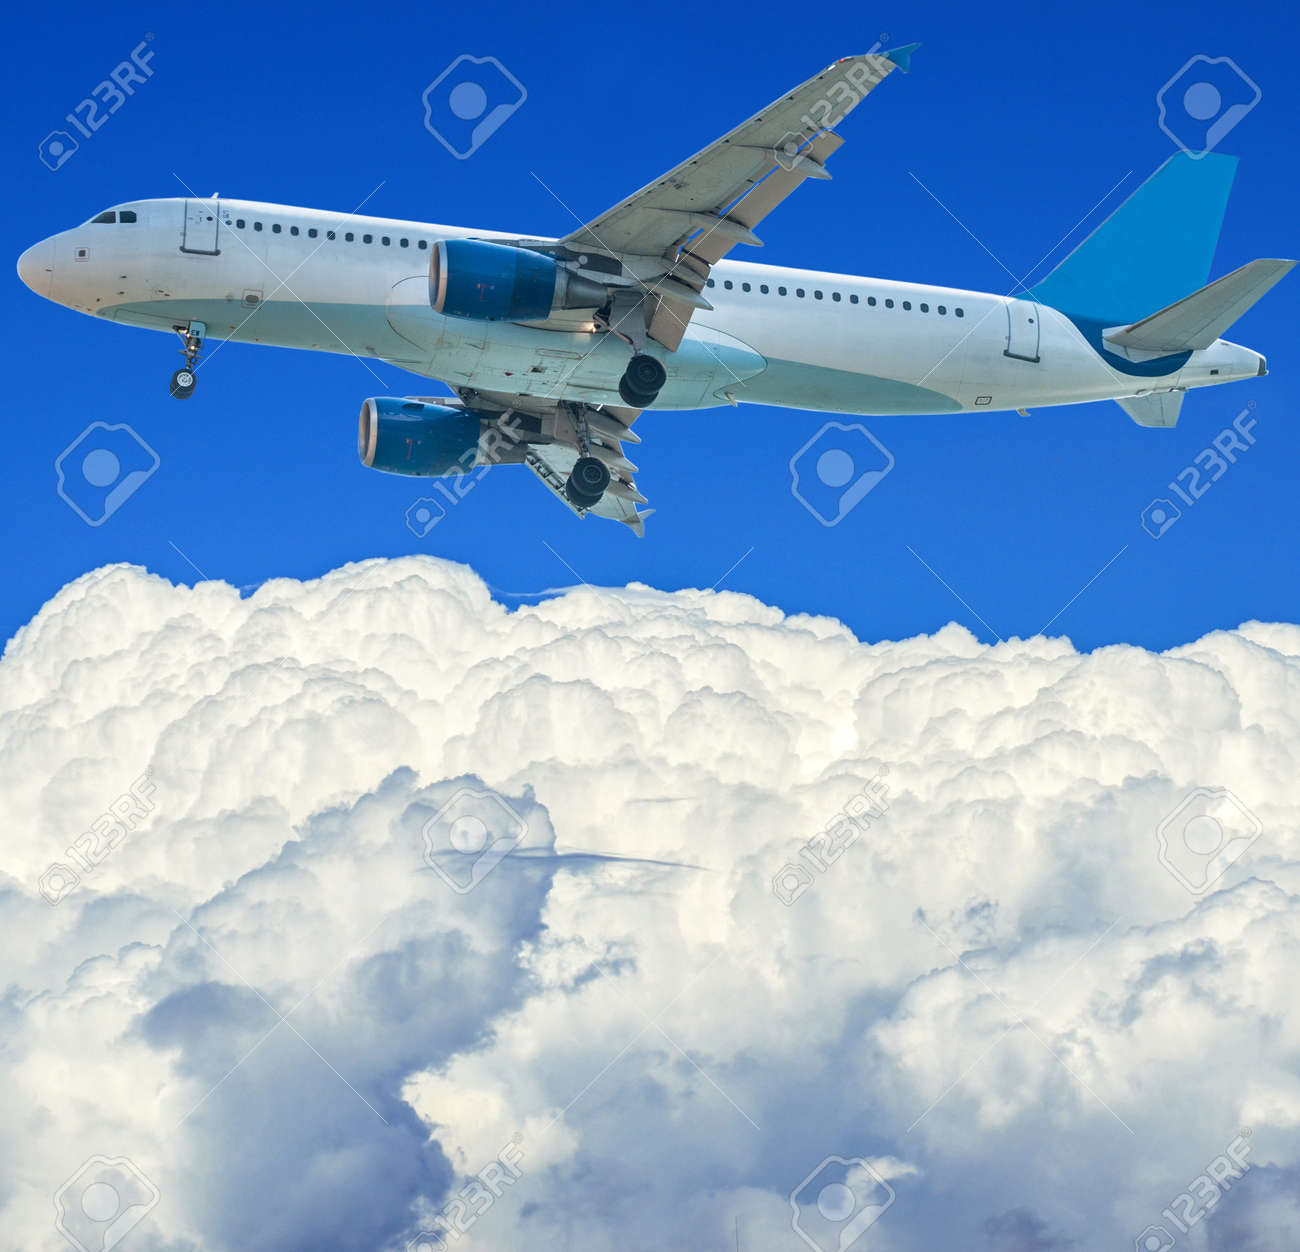 Airplane in the sky Stock Photo - 15686486